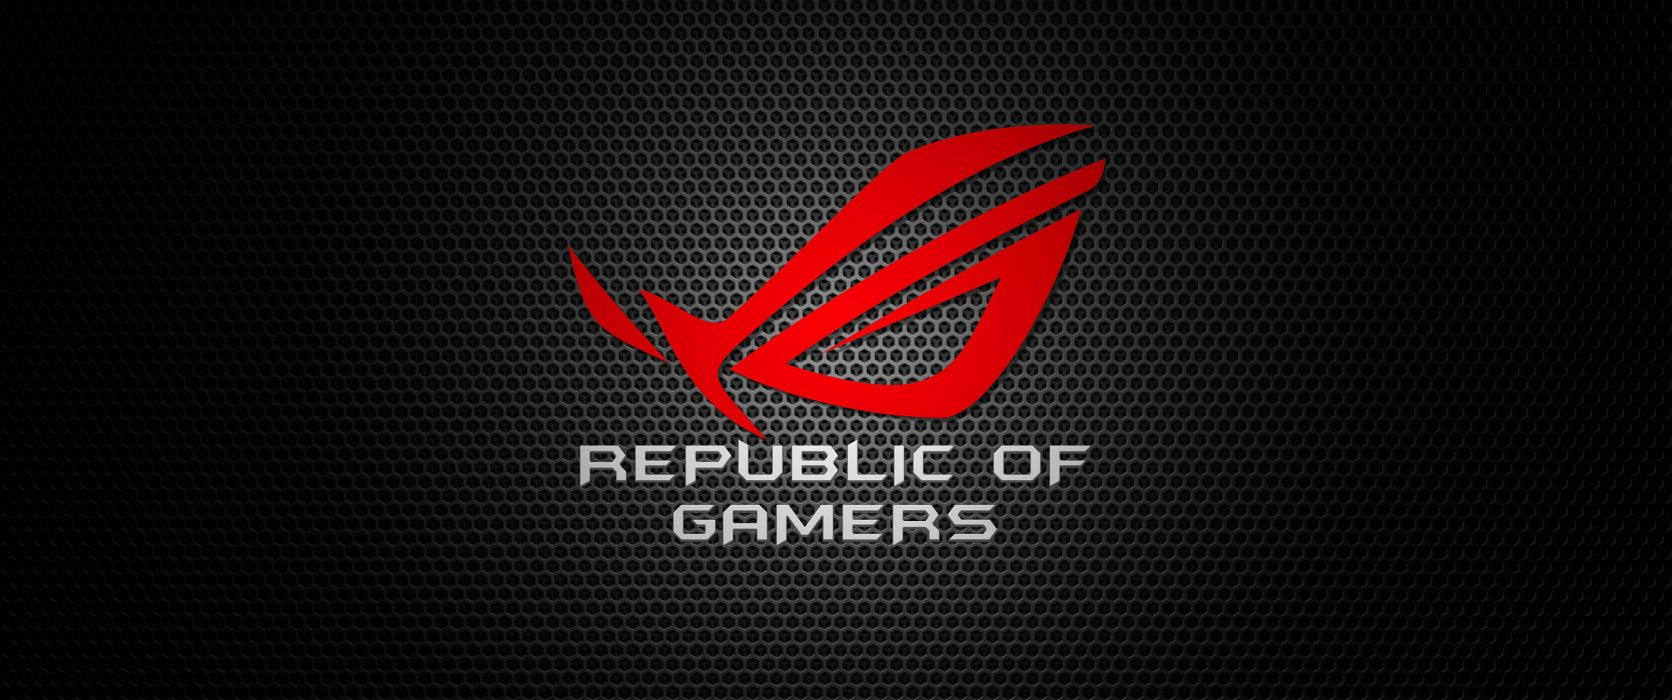 Asus Logo Hd Wallpaper Gaming Game Video Computer Gamer Poster Wallpaper